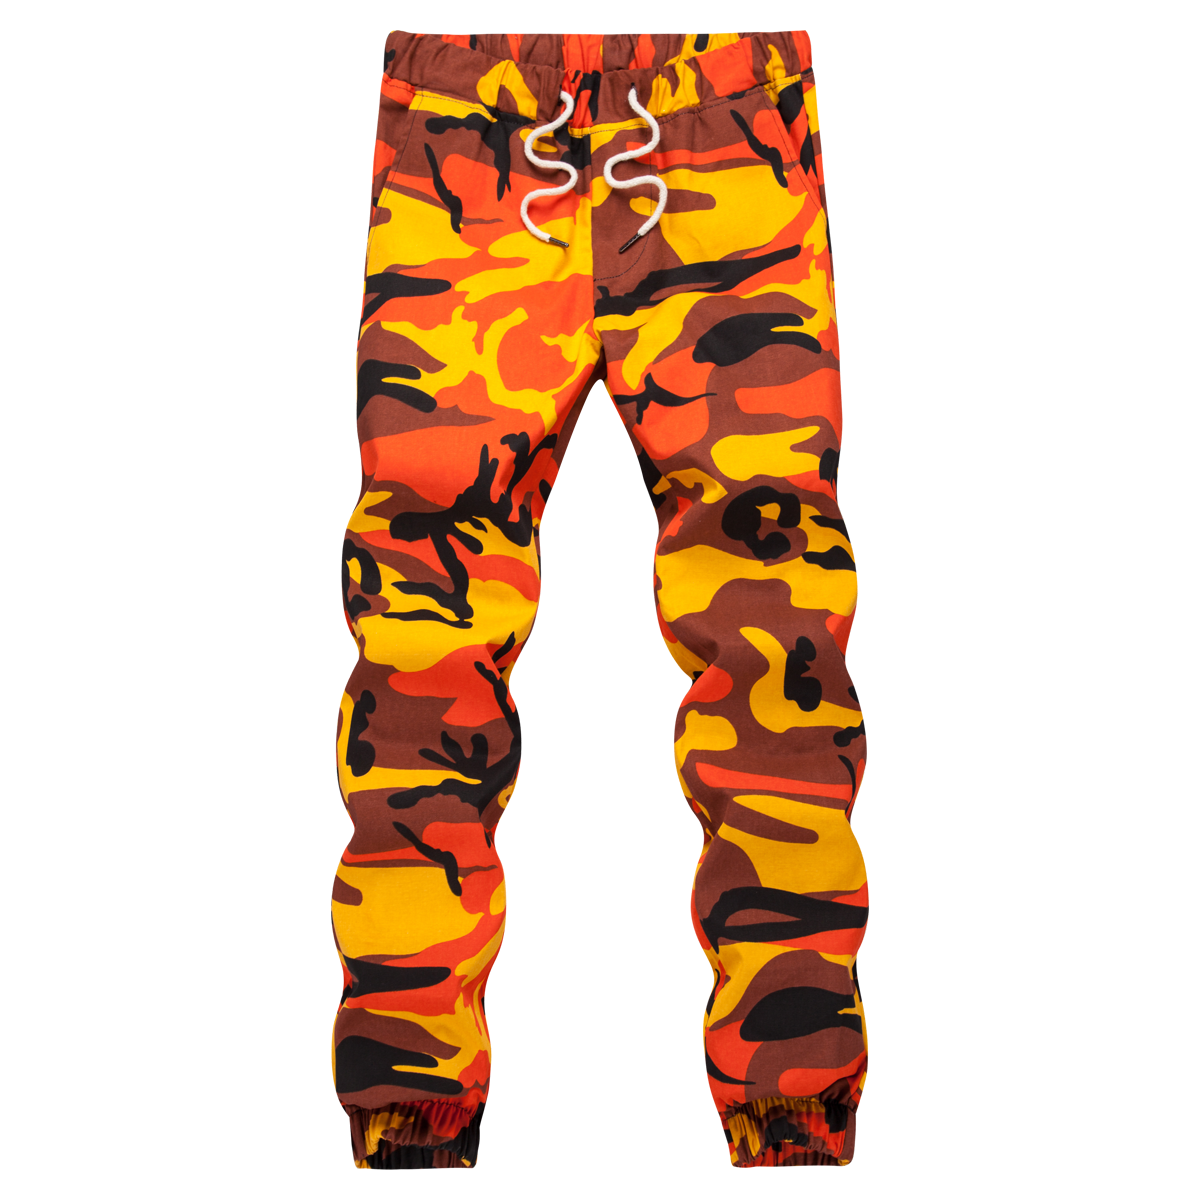 Pants Men Trouser-Pockets Orange Camouflage Jogger Military Hip-Hop Tactical Cotton Woven